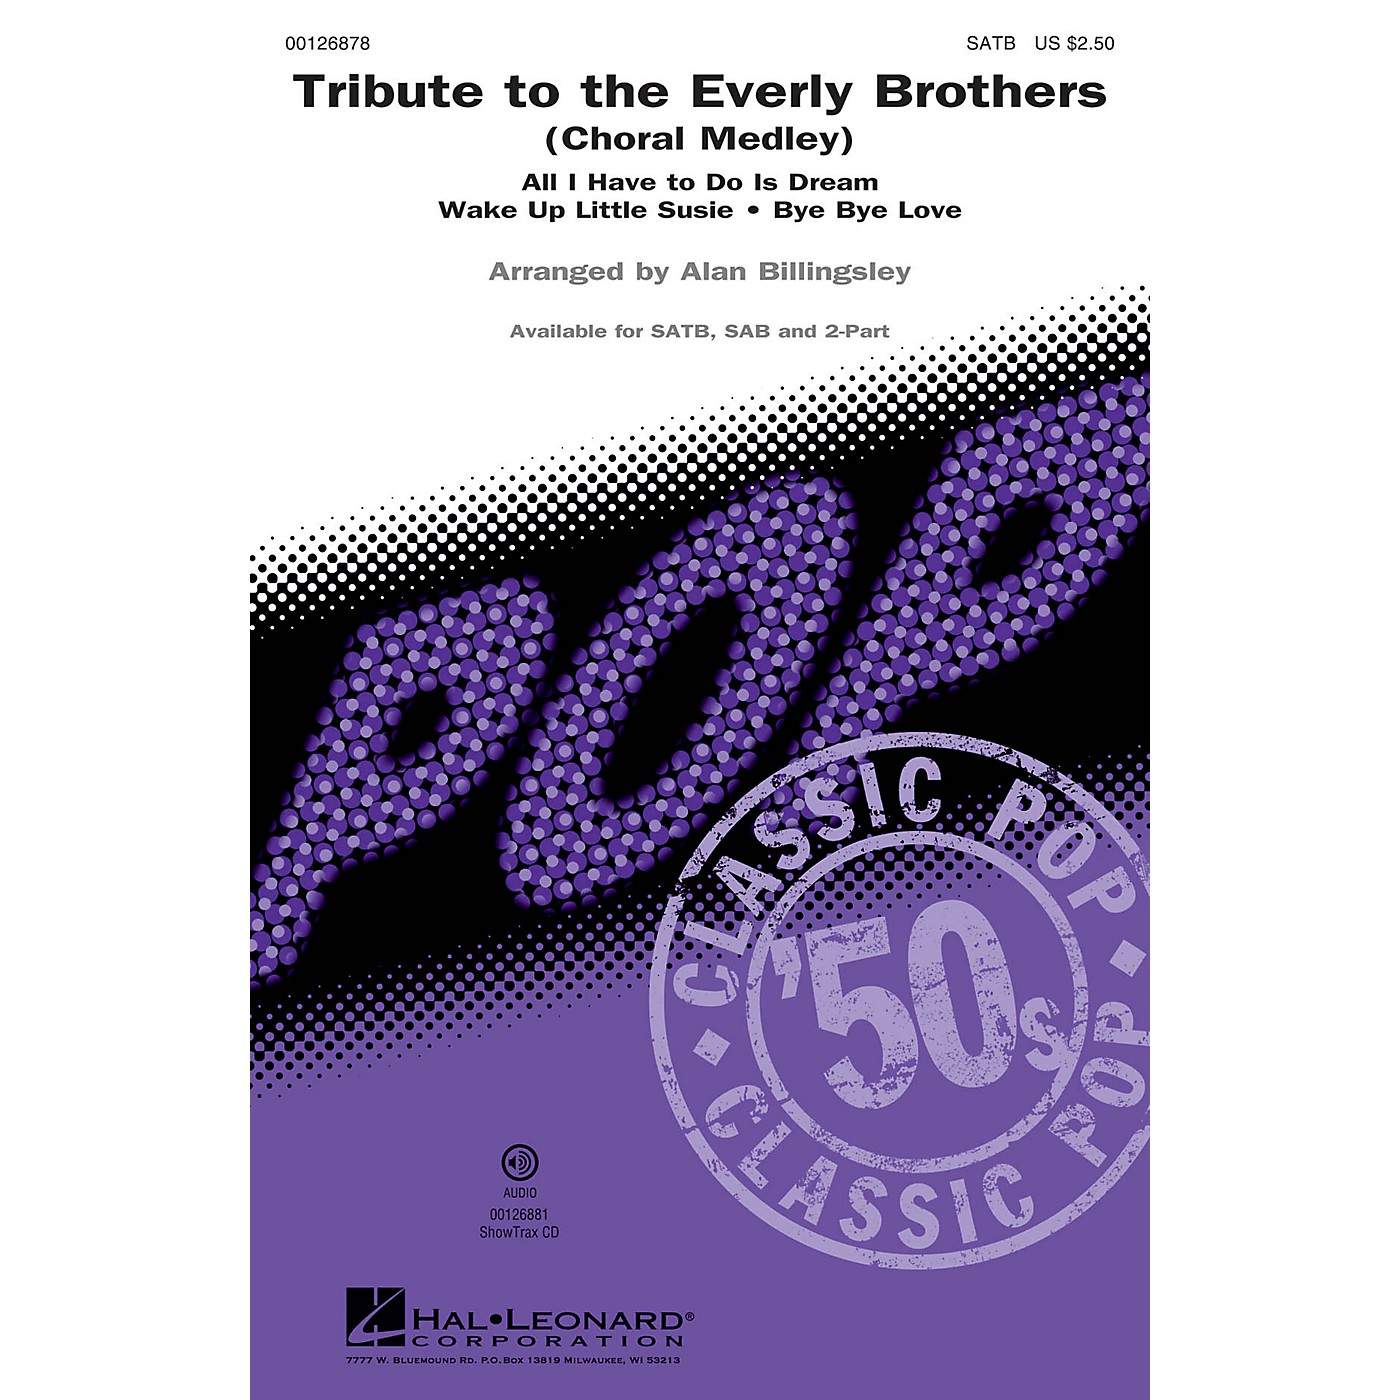 Hal Leonard Tribute to the Everly Brothers (Choral Medley) 2-Part by Everly Brothers Arranged by Alan Billingsley thumbnail